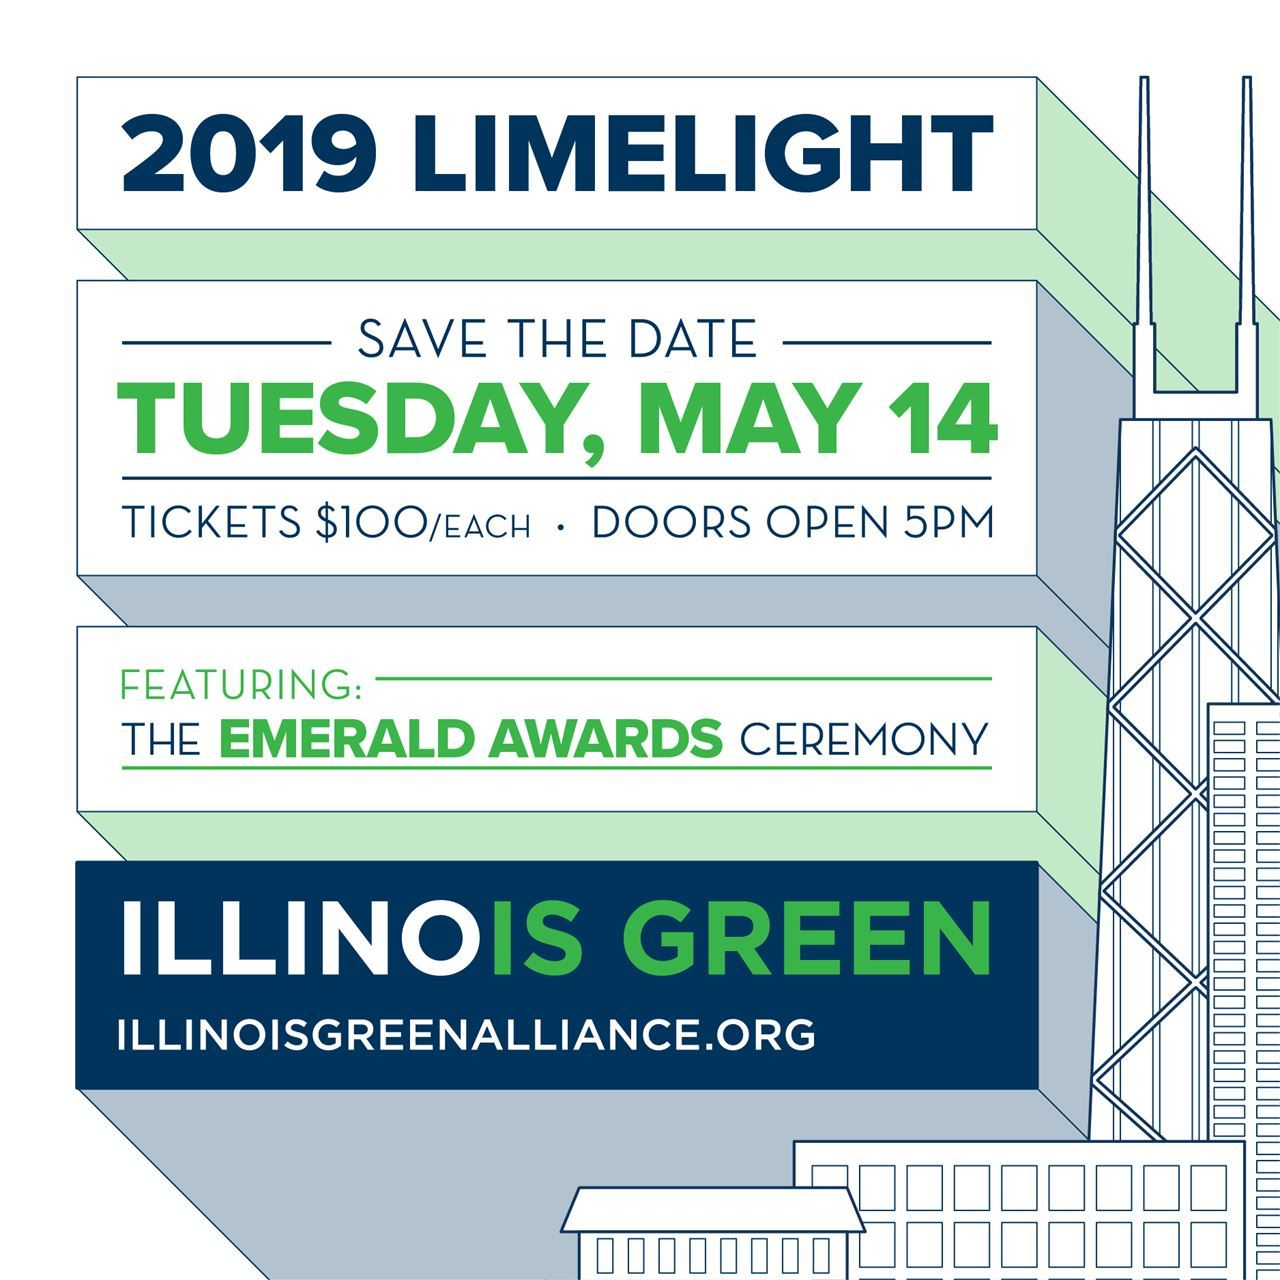 2019 Limelight